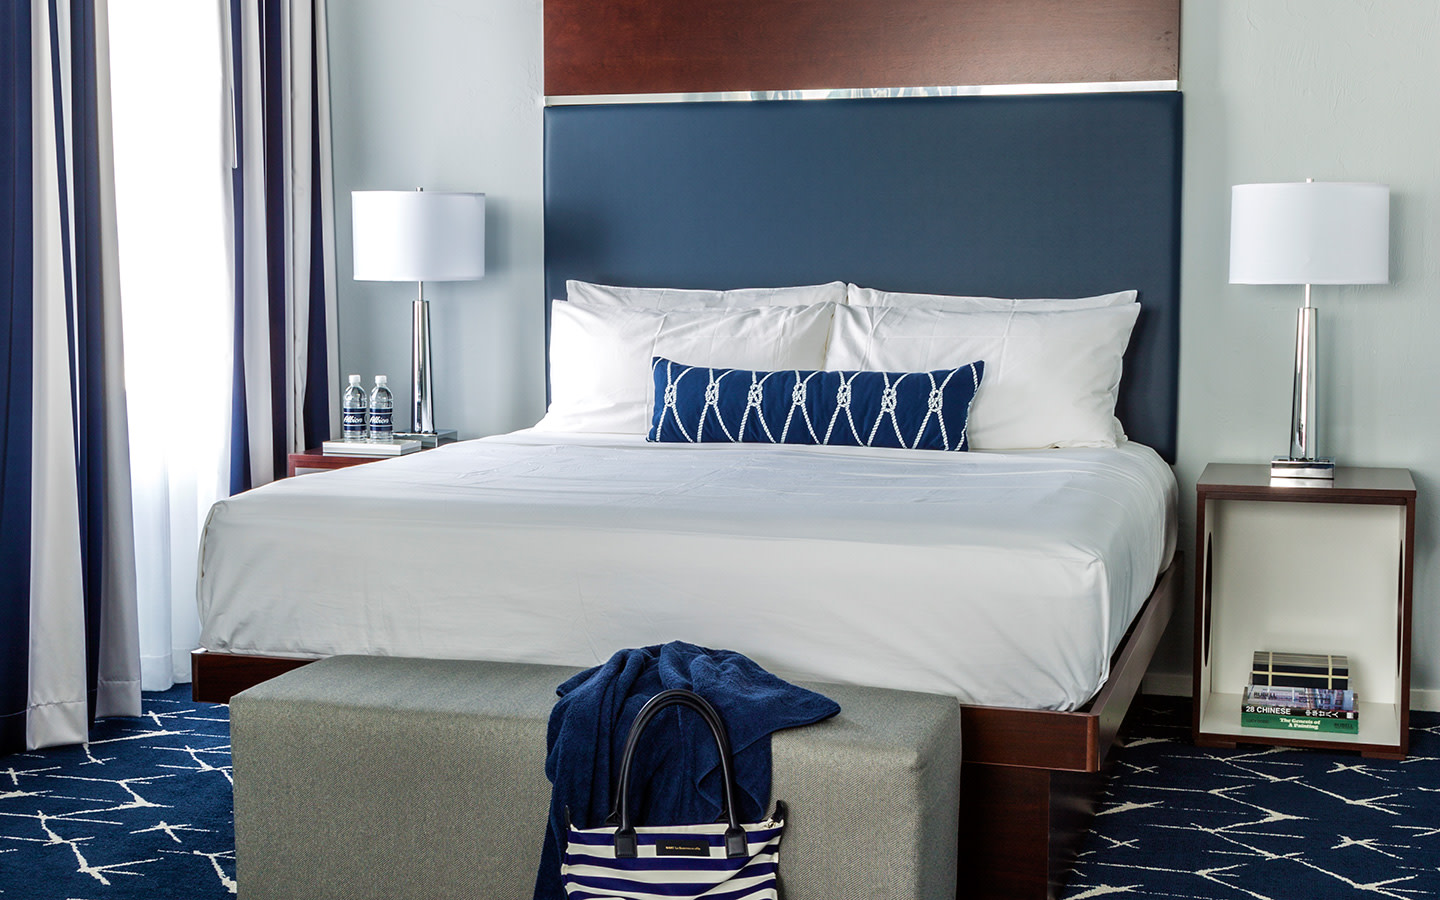 Deluxe room with one king bed